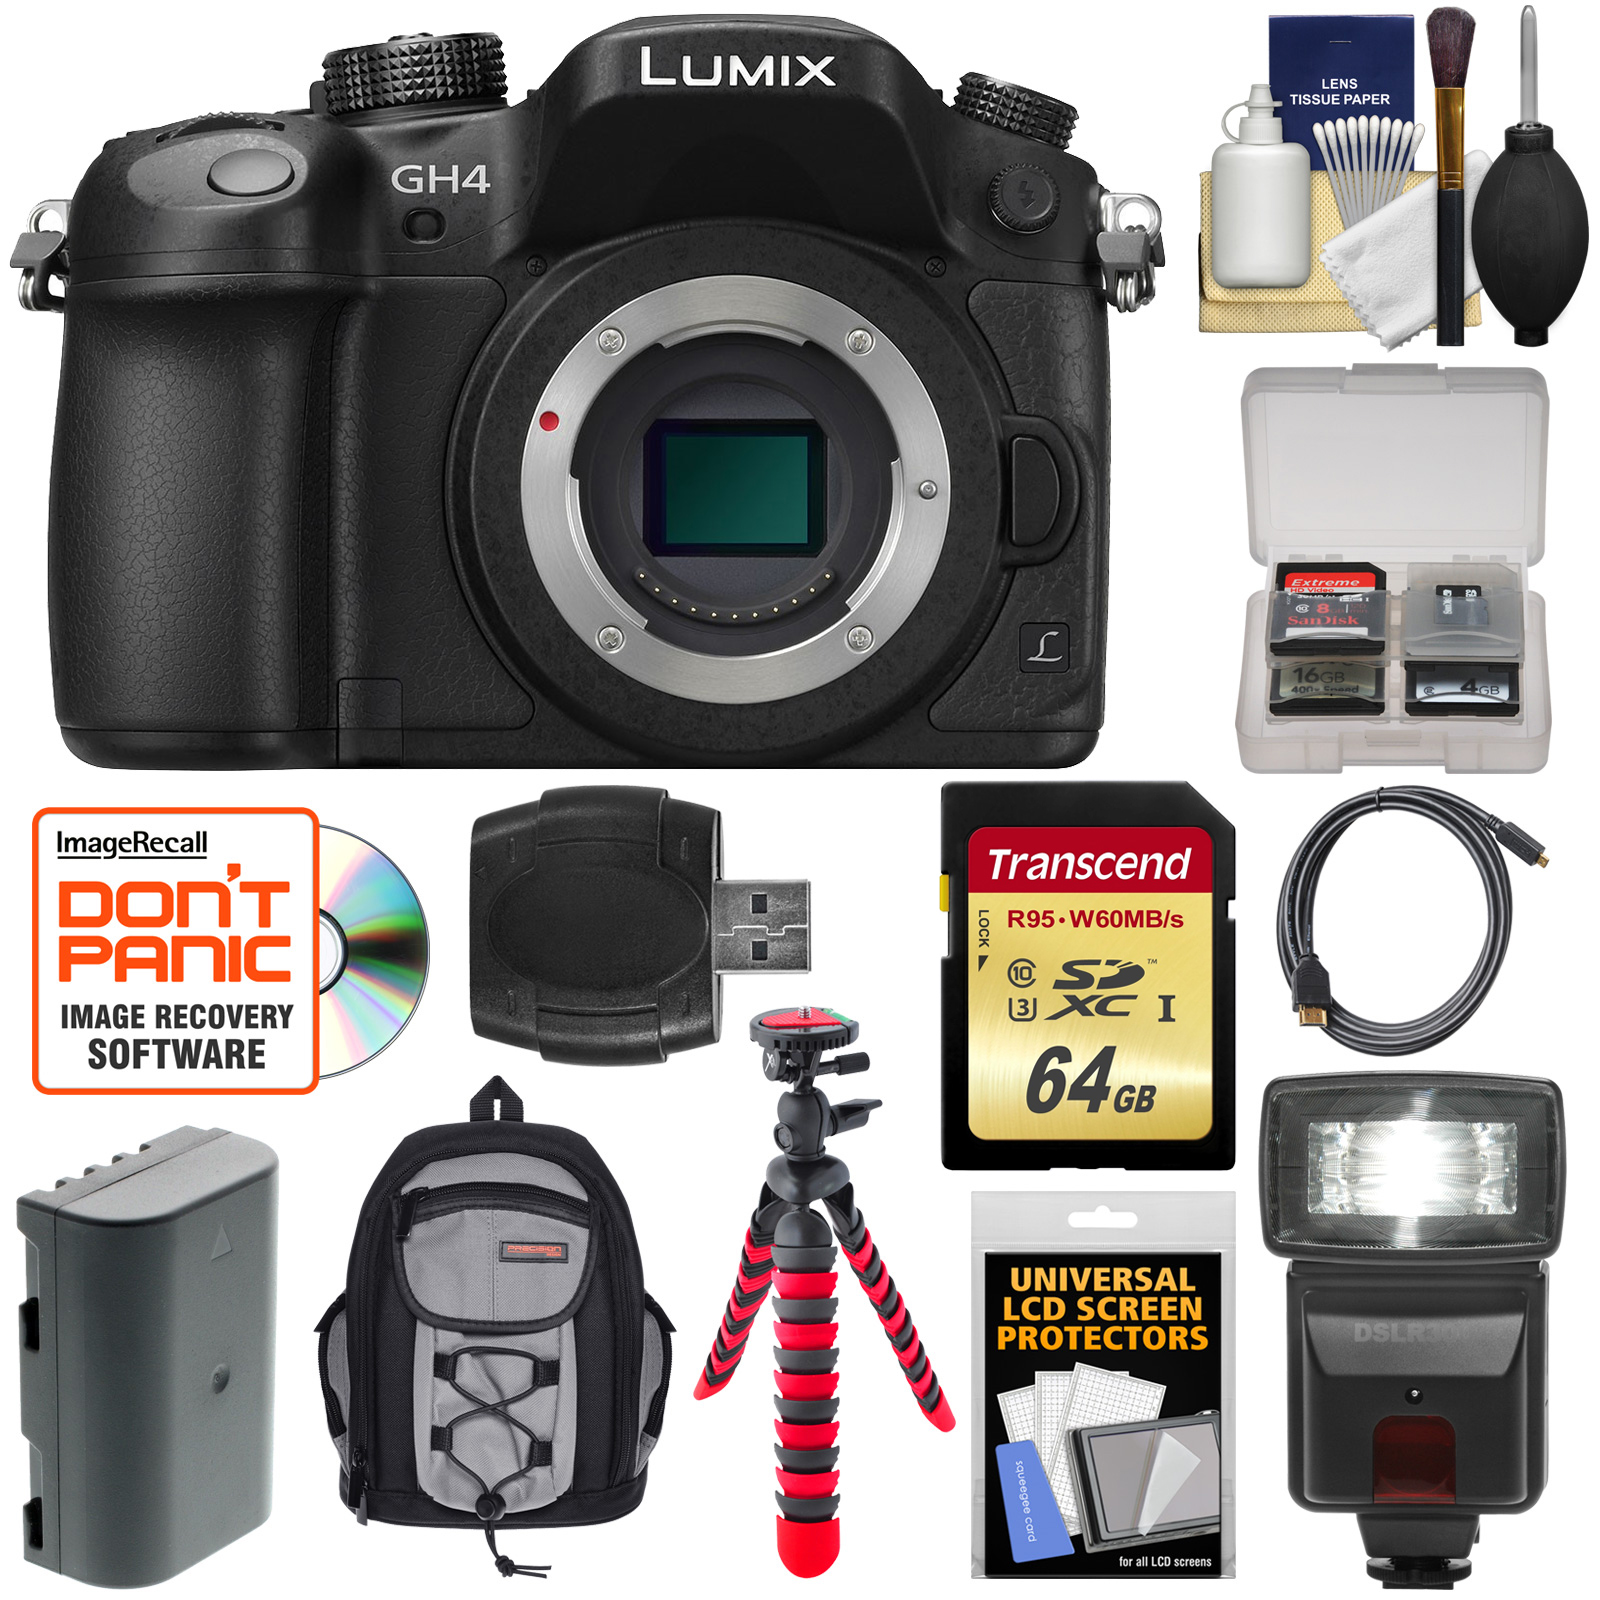 Panasonic Lumix DMC-GH4 4K Micro Four Thirds Digital Camera Body with 64GB Card + Battery + Backpack Case + Flex Tripod + Flash + Accessory Kit